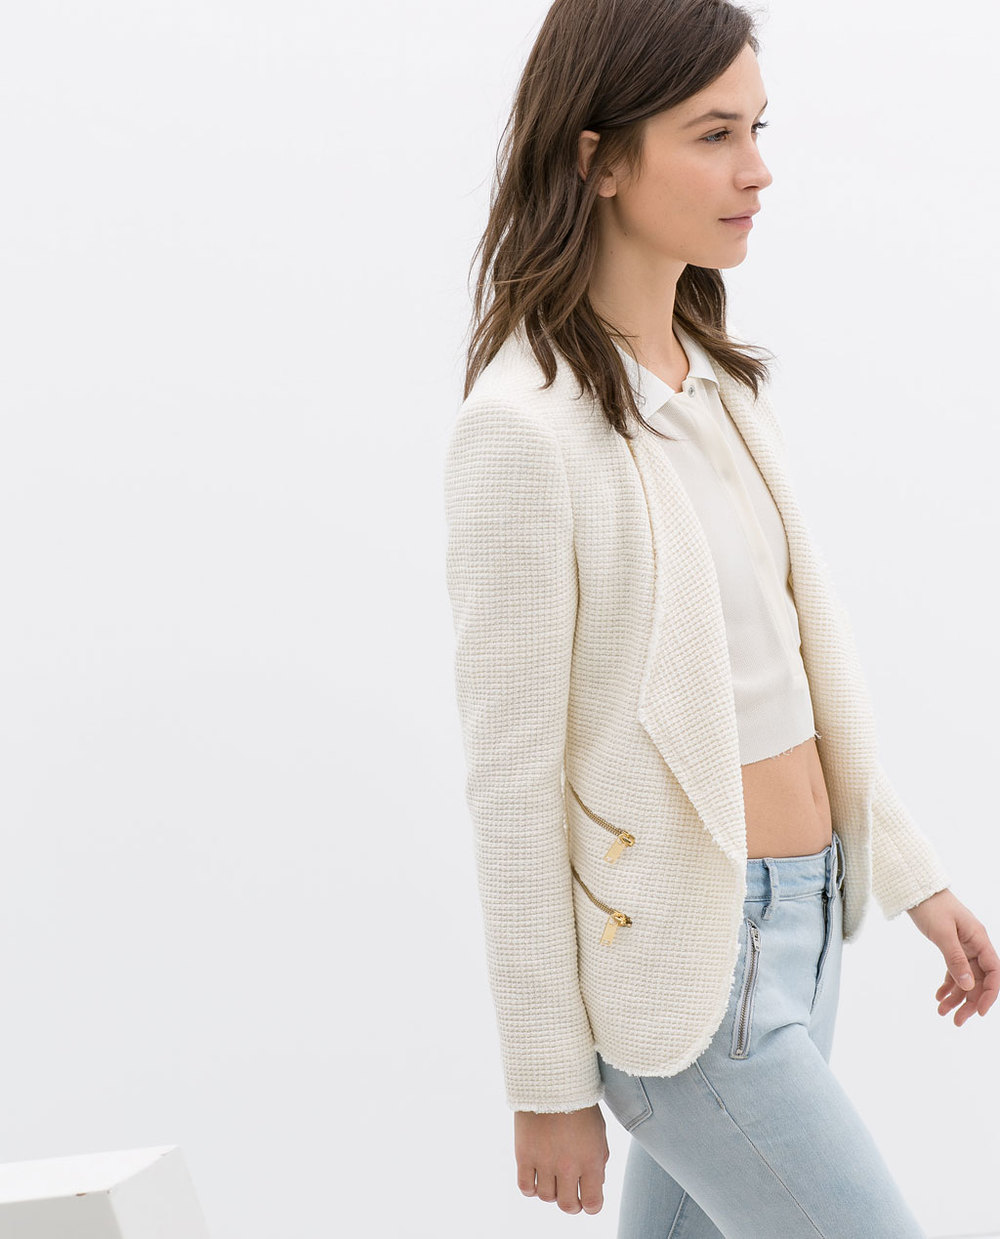 Structured jacket with zips. Zara. Was: $139 Now: $99.